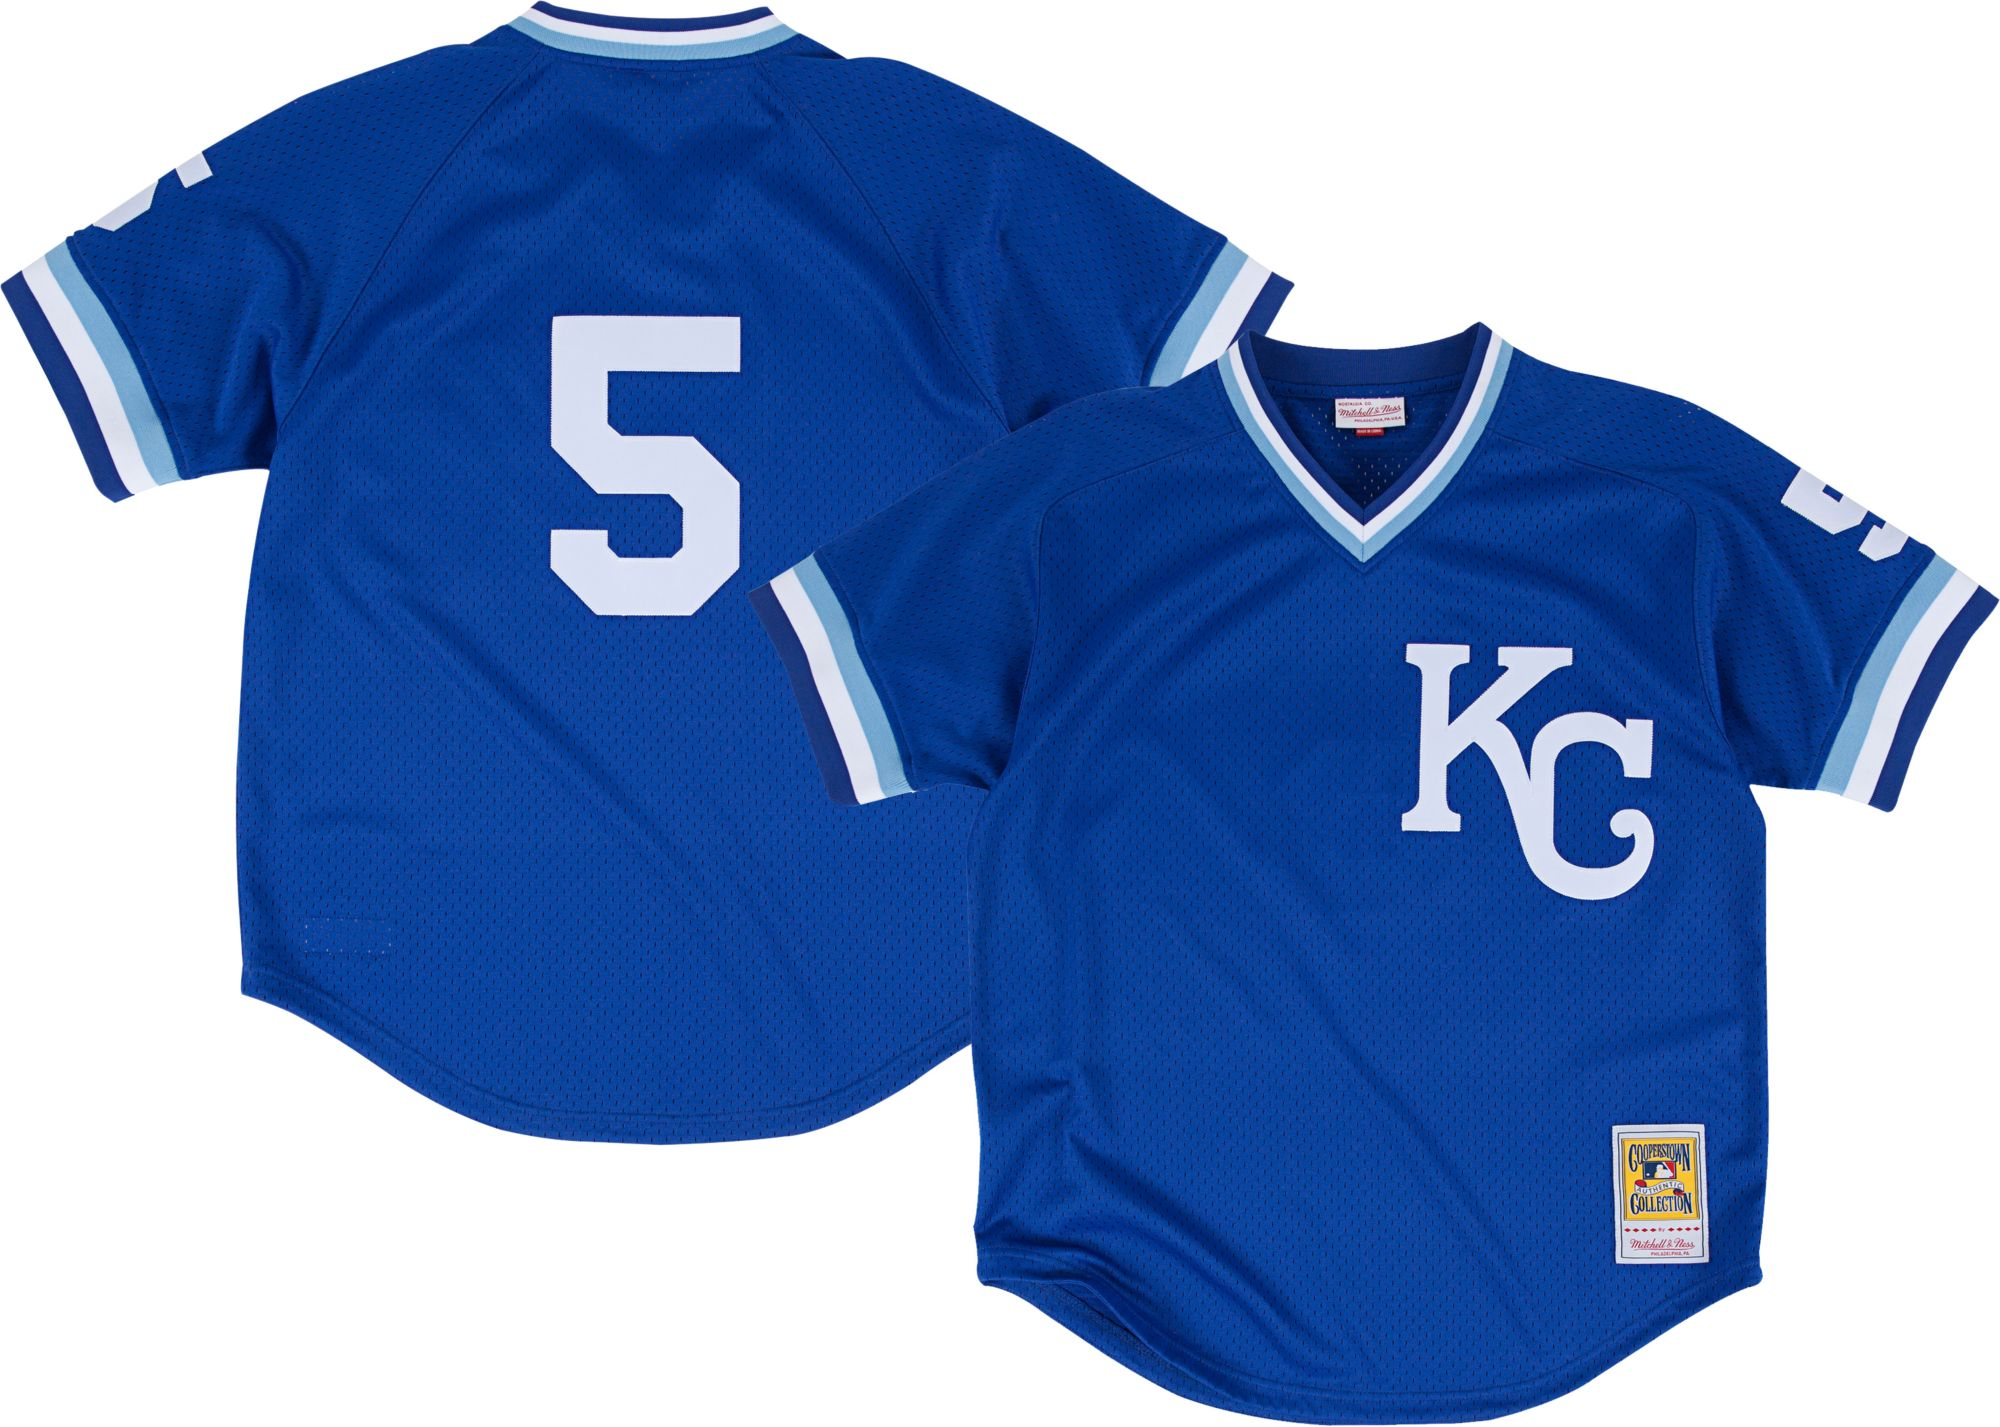 6bbbfb75d4a ... blue jersey bas 256db 9f3a5  discount code for mitchell ness mens  replica kansas city royals george brett royal cooperstown batting practice